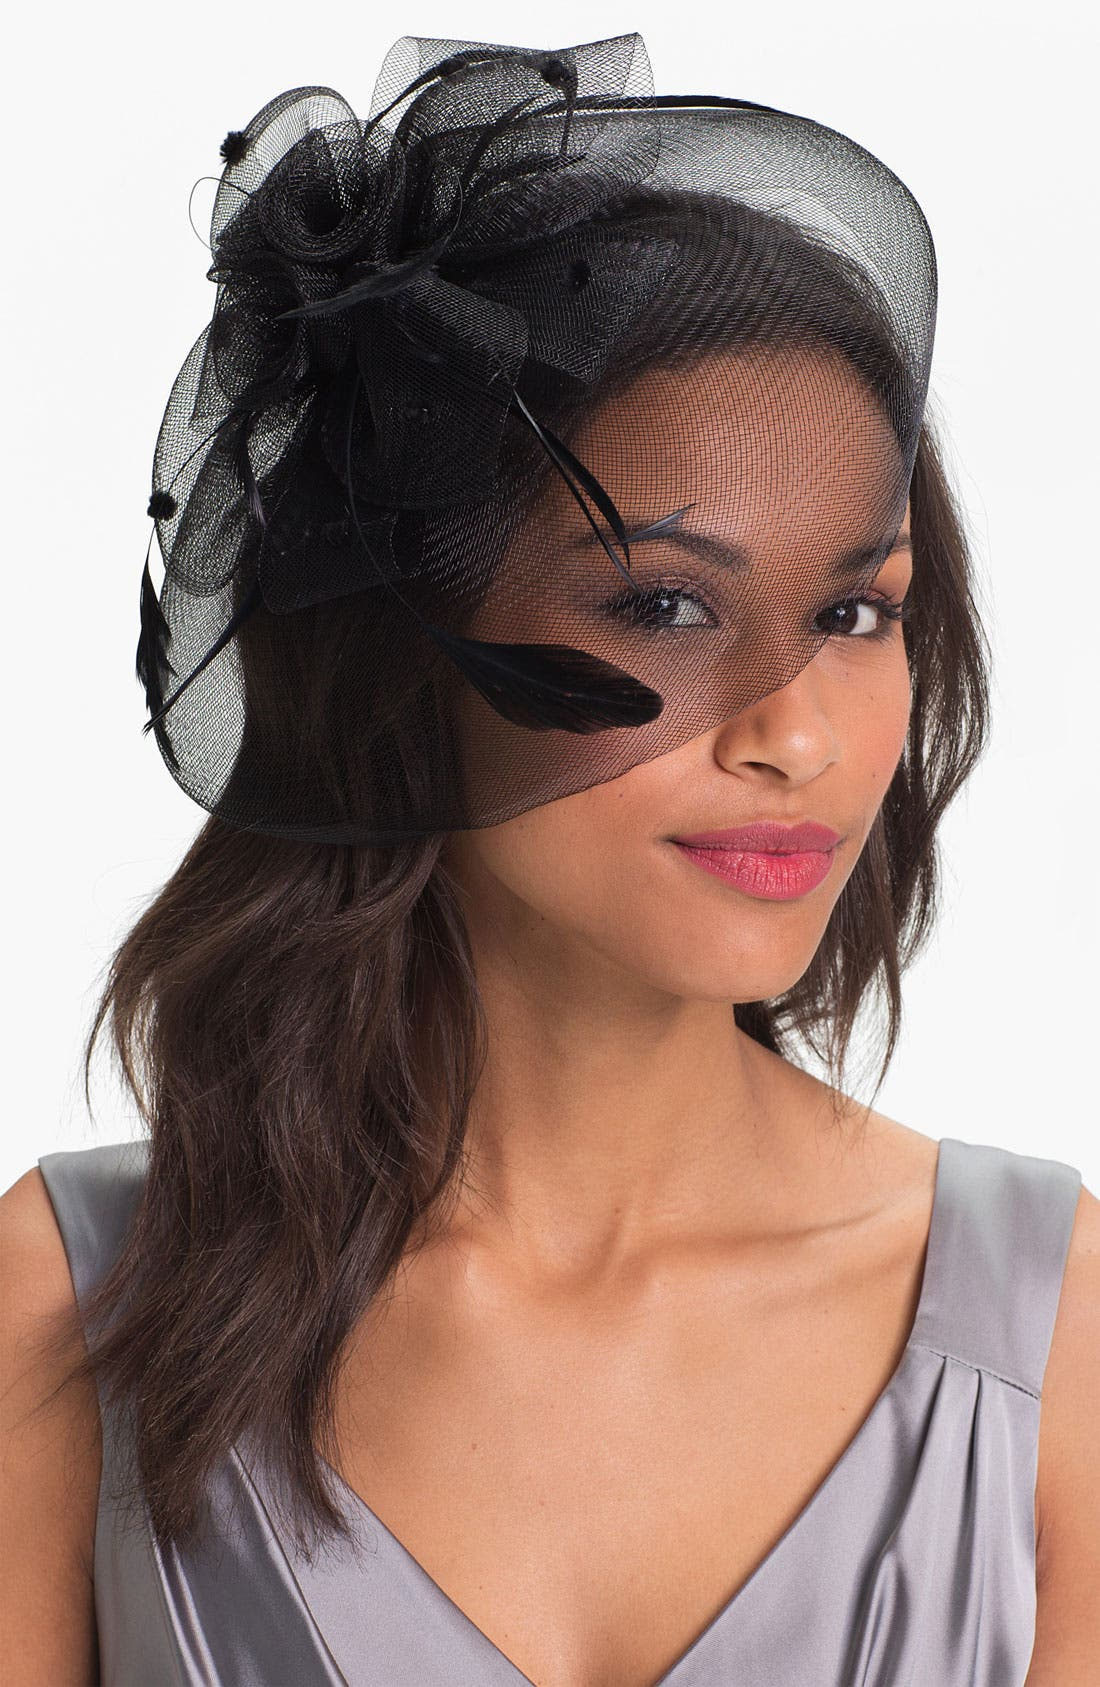 'Derby Down' Fascinator Headband,                             Main thumbnail 1, color,                             001